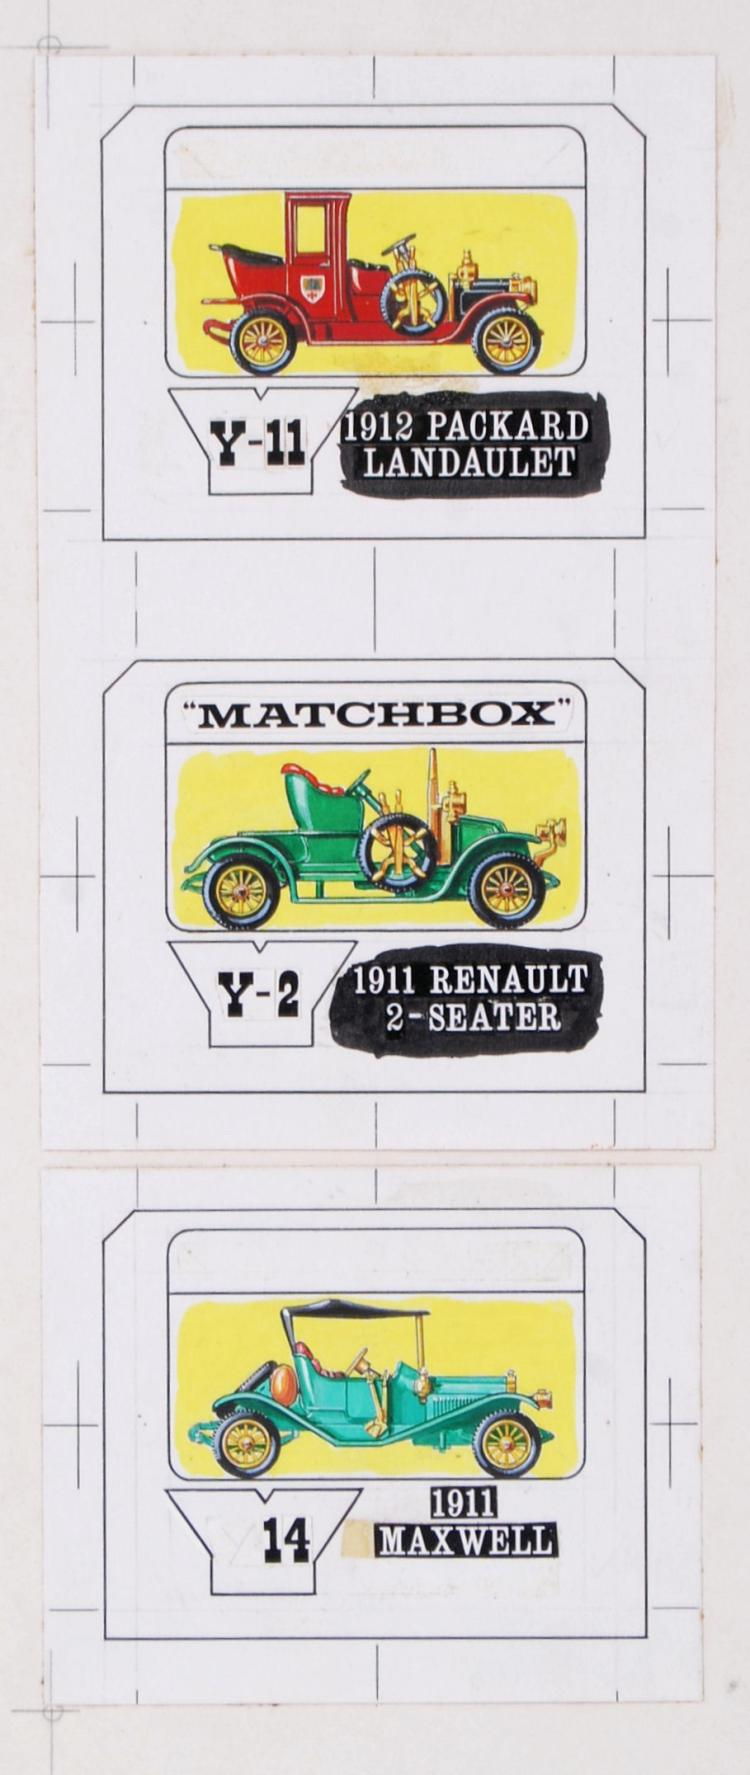 RARE MATCHBOX ARTWORK: A colle